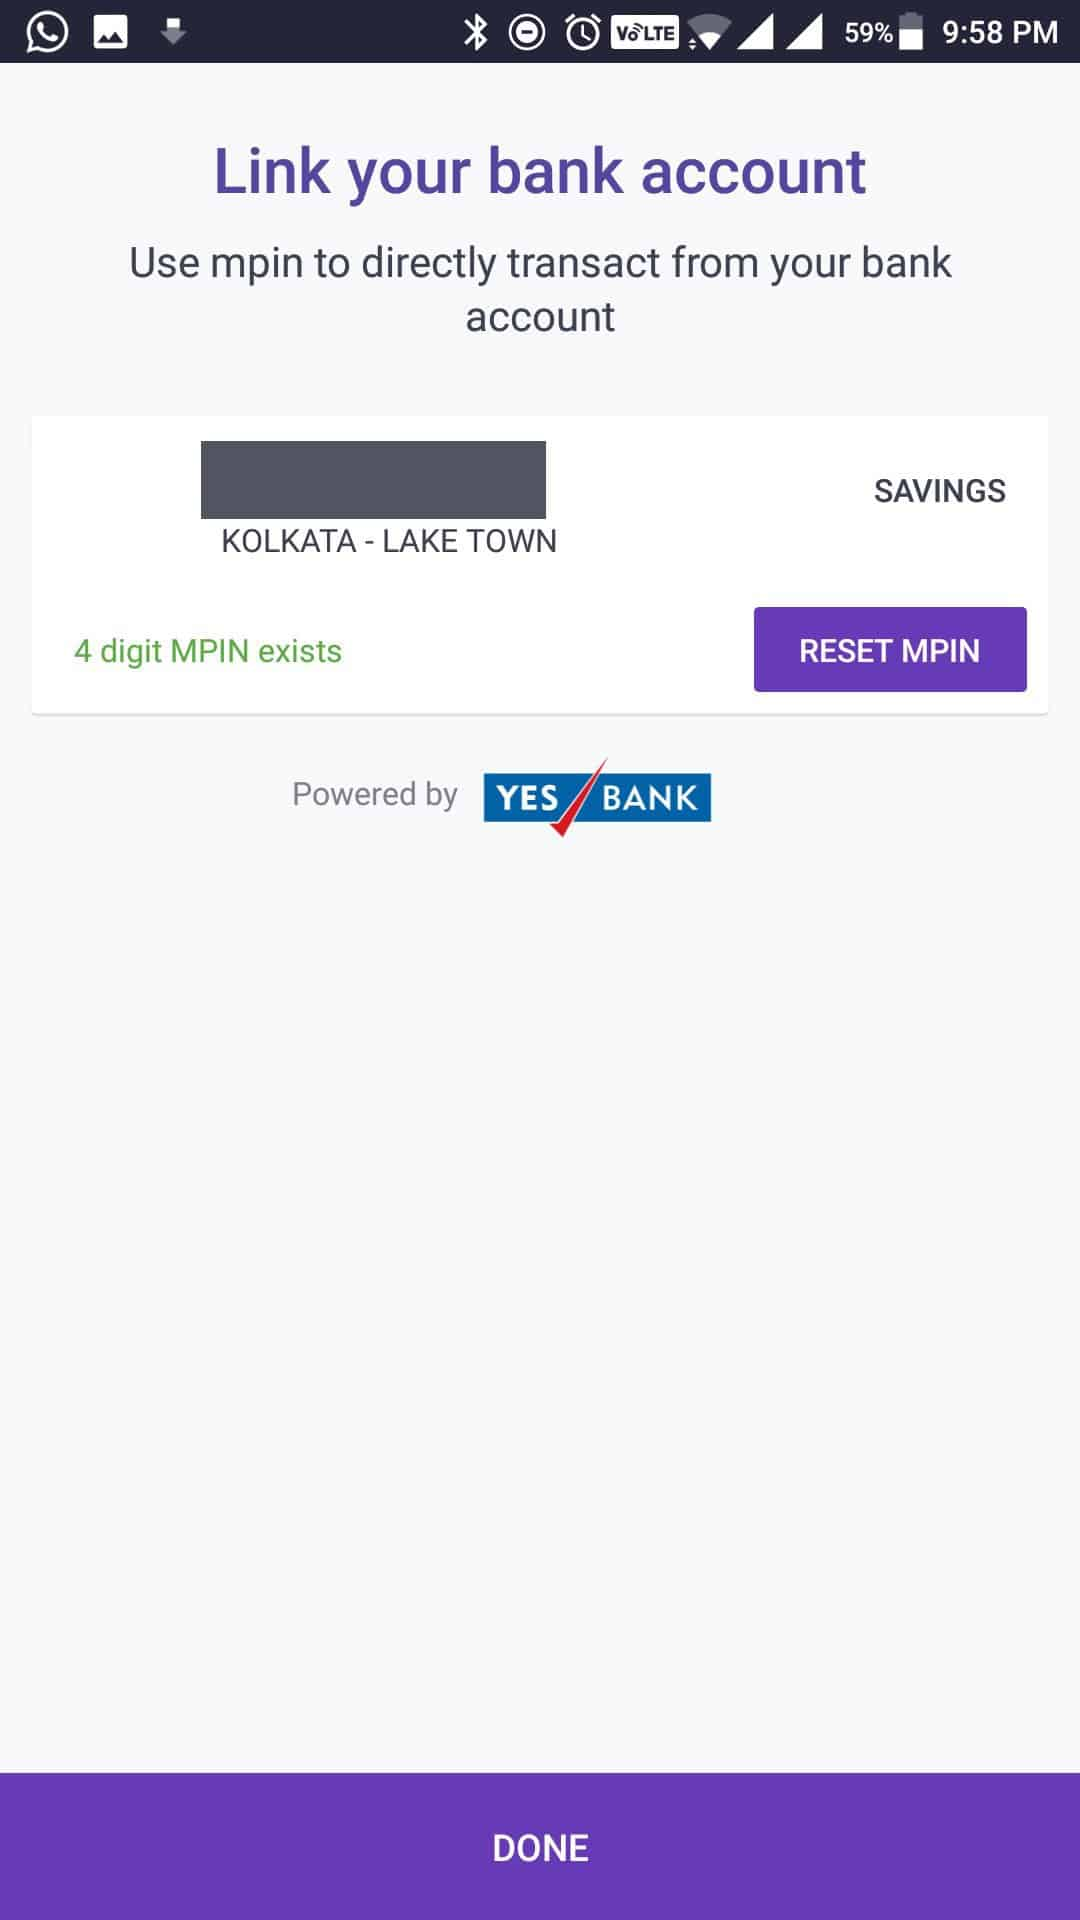 PhonePe - Link your bank account